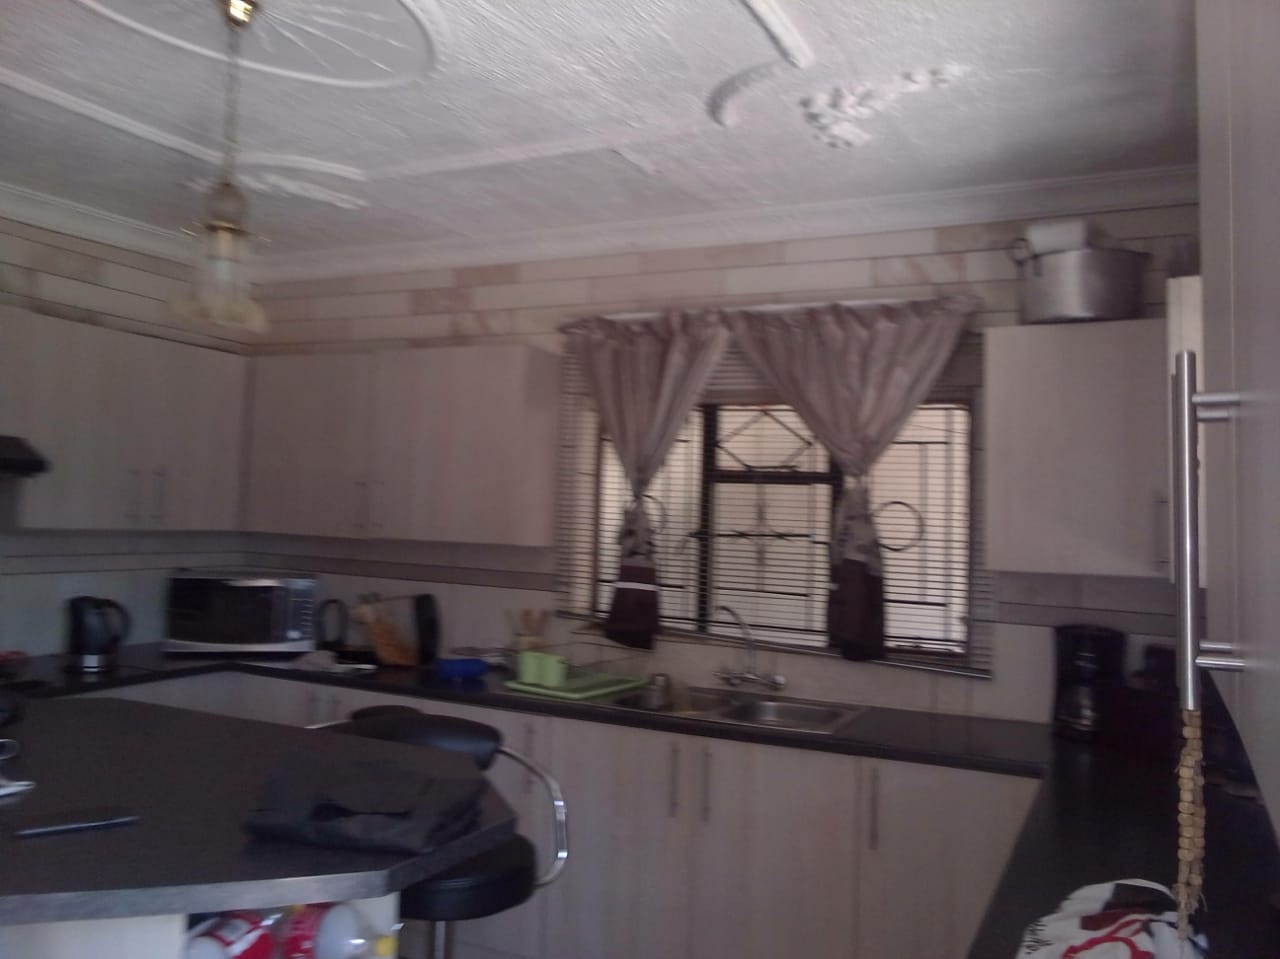 MAMELODI EAST 3 Bedroom house for sale